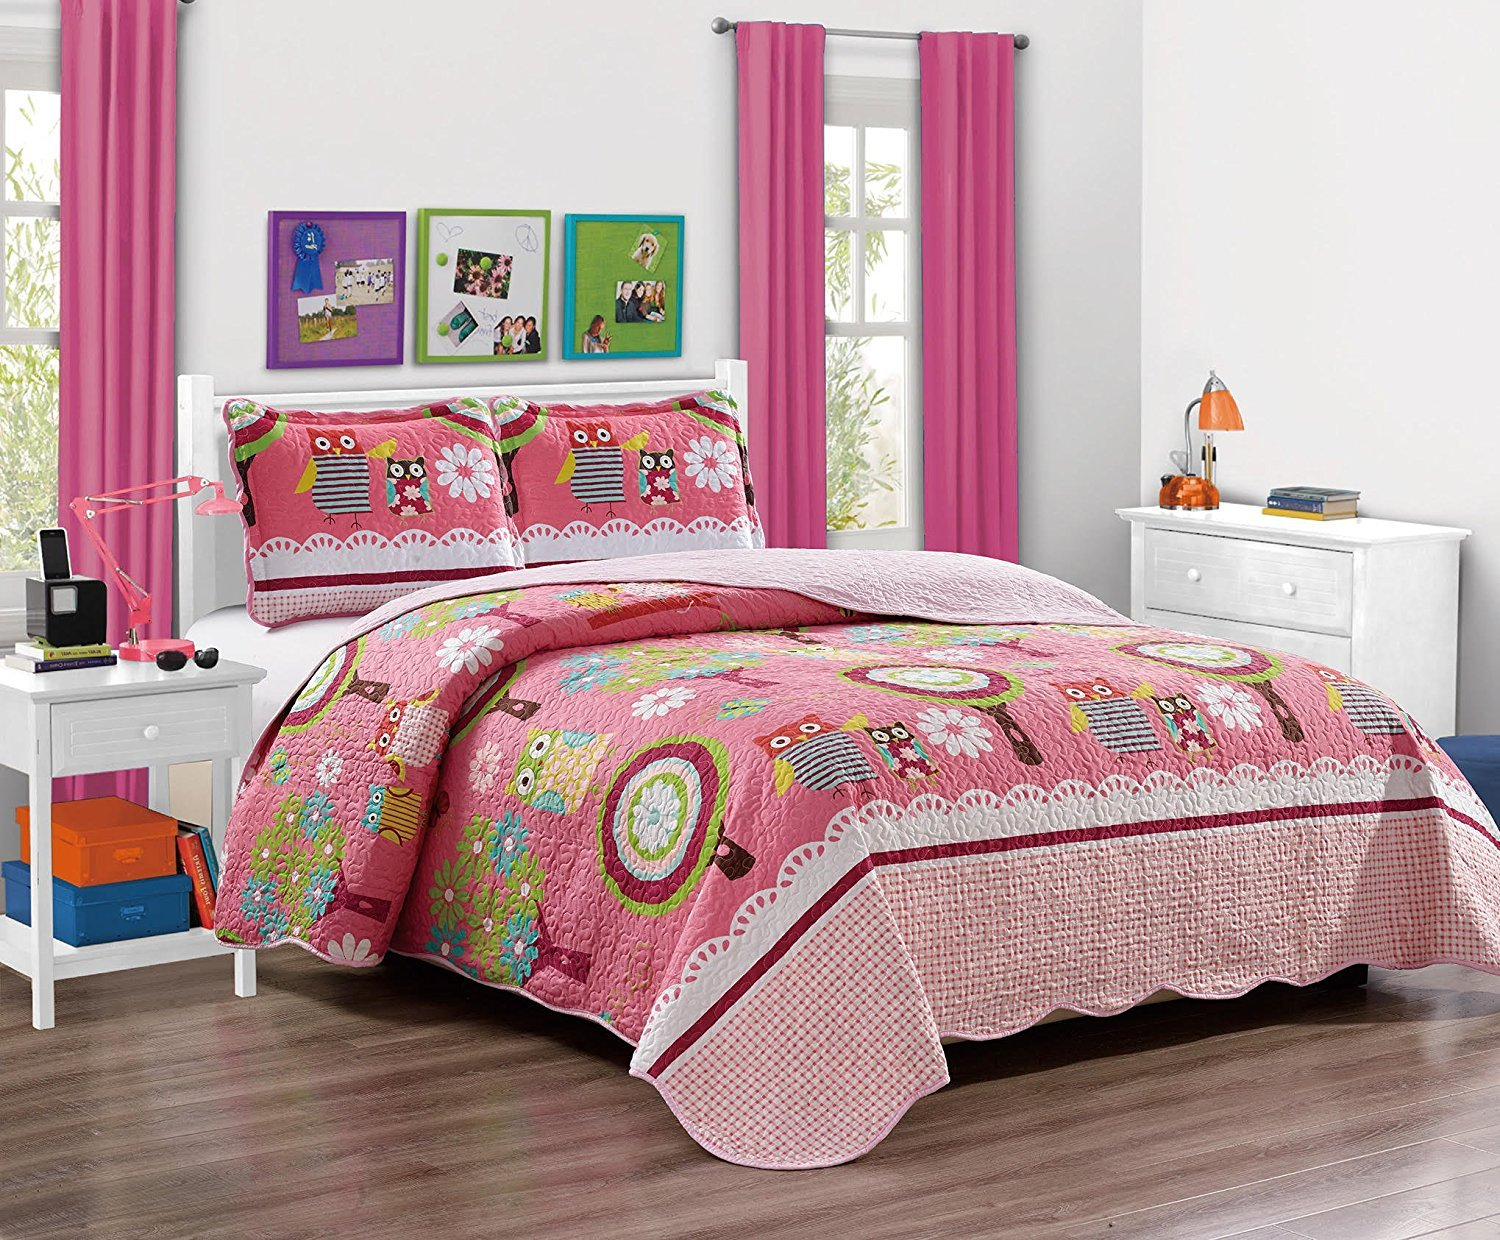 MK Home Mk Collection 5pc Twin Bedspread Set With Sheet Set Teens/Girls Owl Pink New # Owl Pink